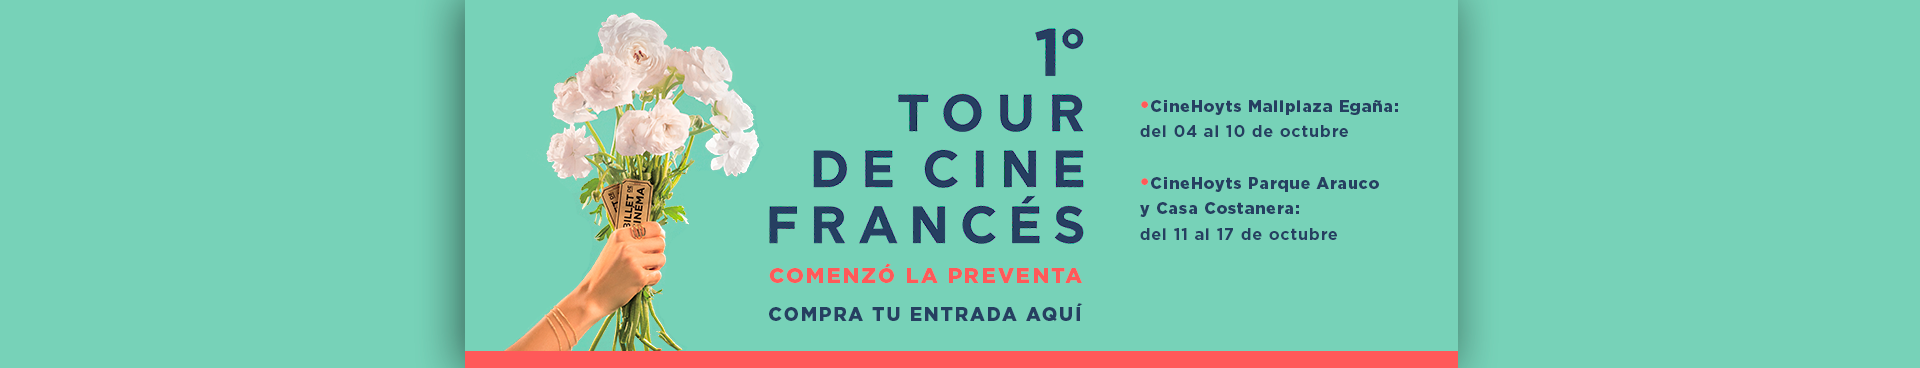 TOUR DE CINE FRANCES